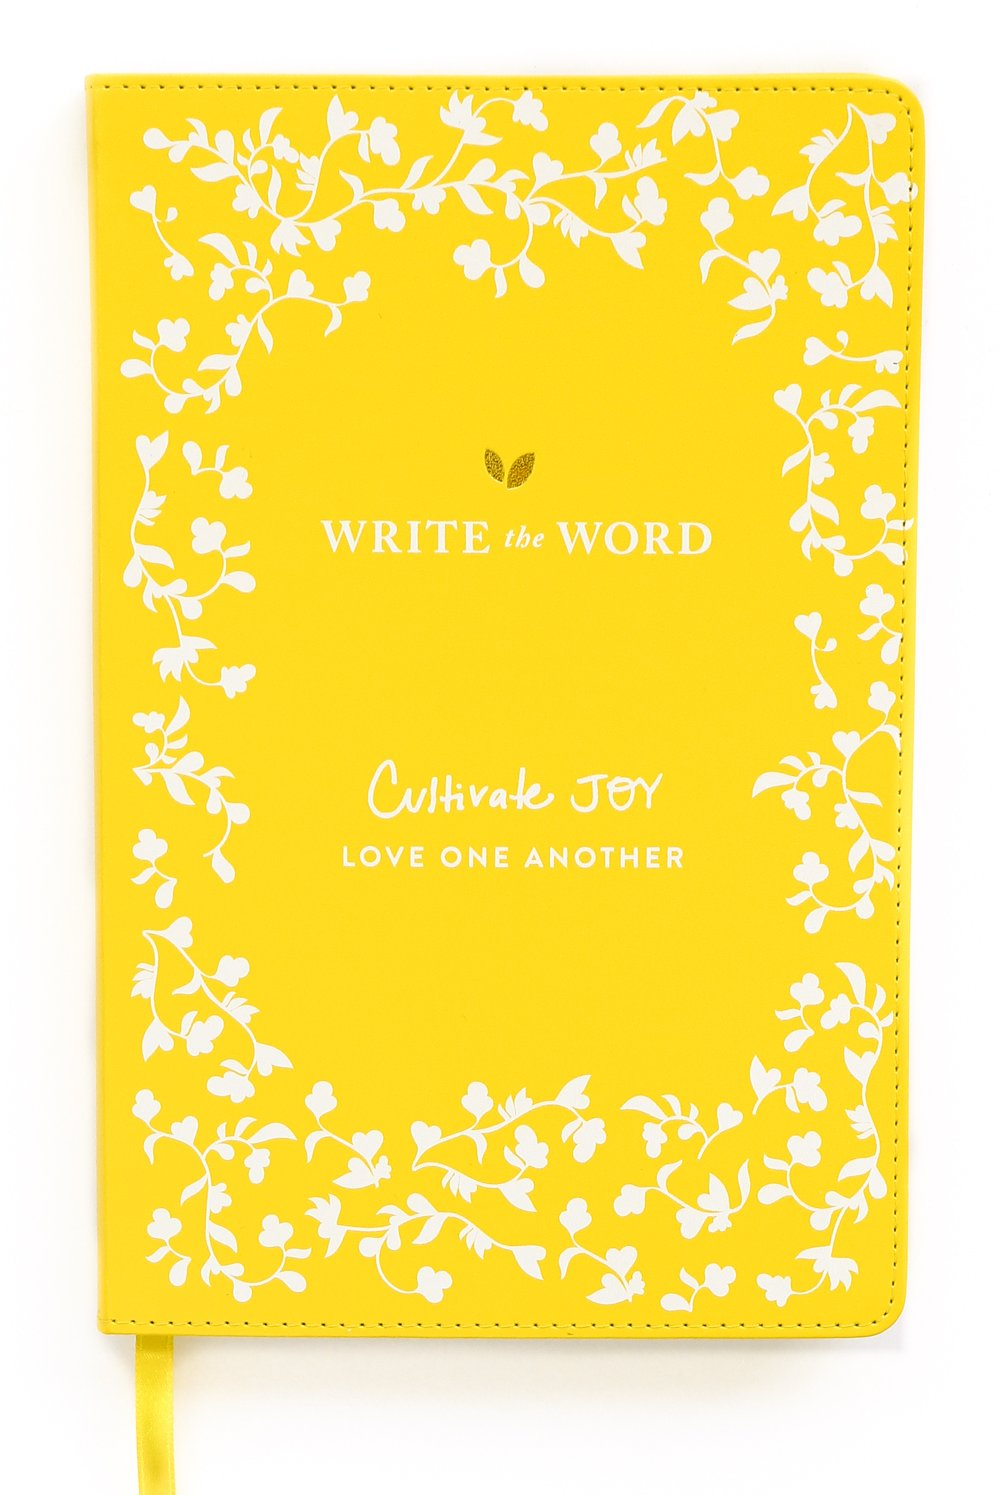 Write the Word Bible Journal: Scripture Faith Journal by Lara Casey (Yellow) by Lara Casey Shop (Image #1)